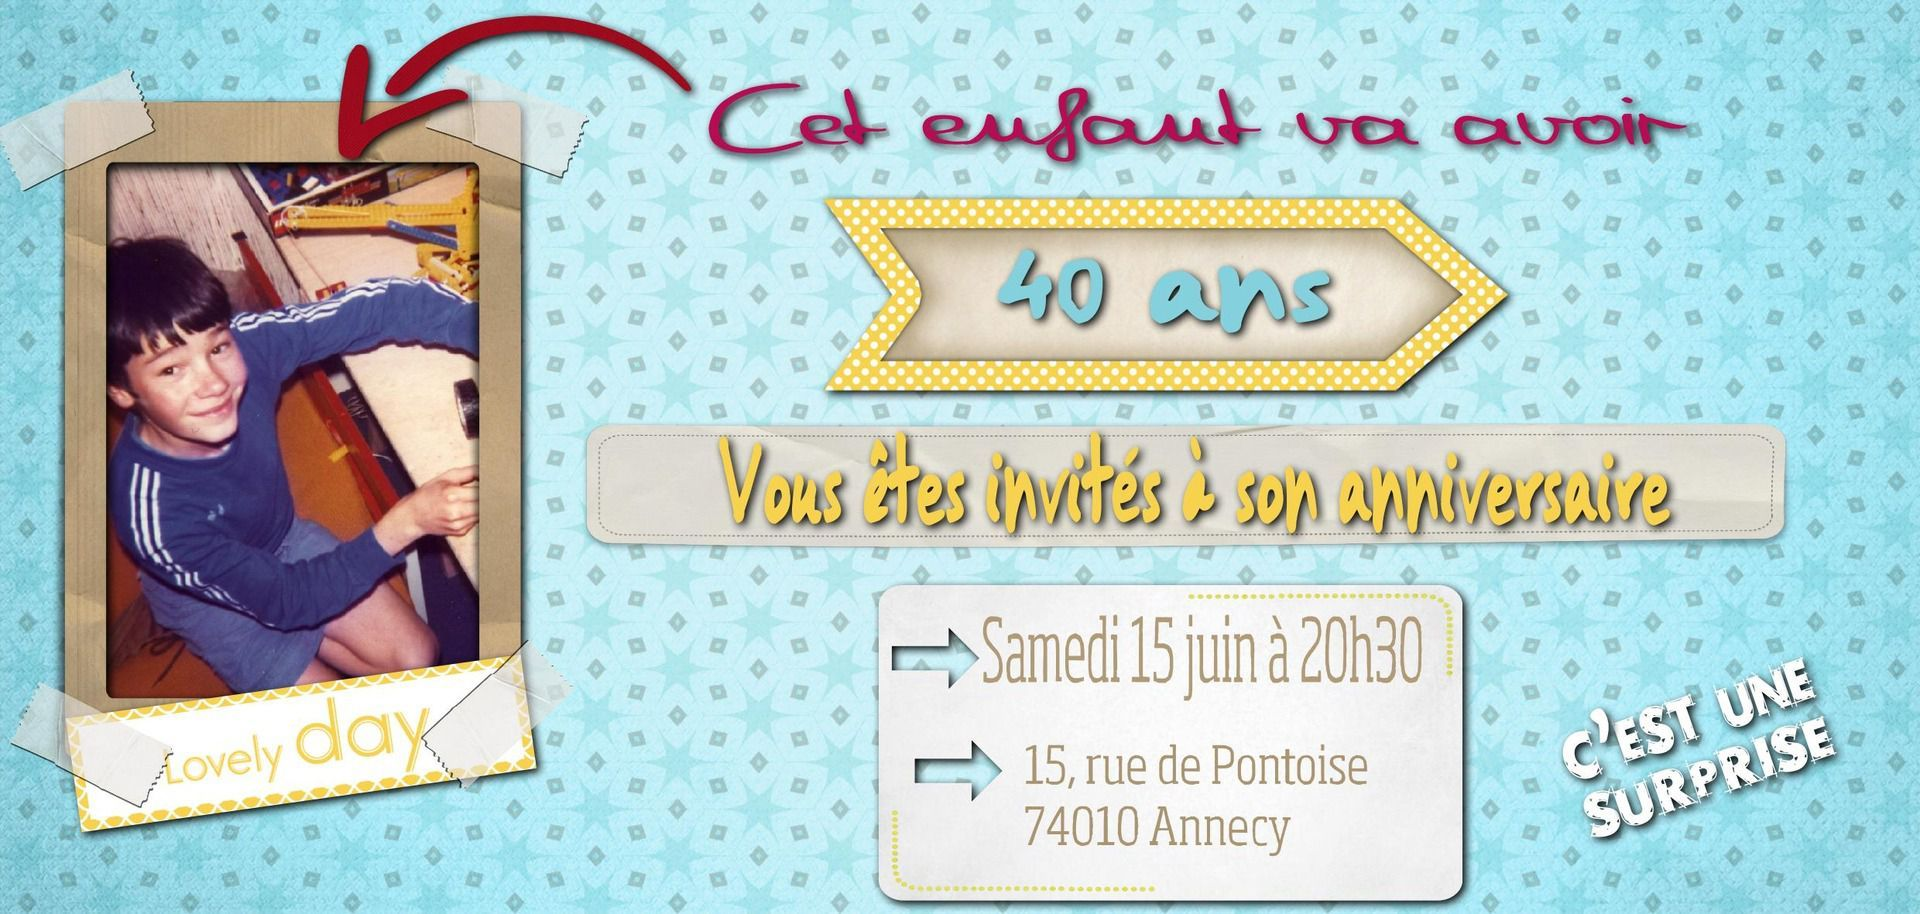 Hervorragend carte invitation anniversaire 40 ans virtuelle gratuite | carte  PO77